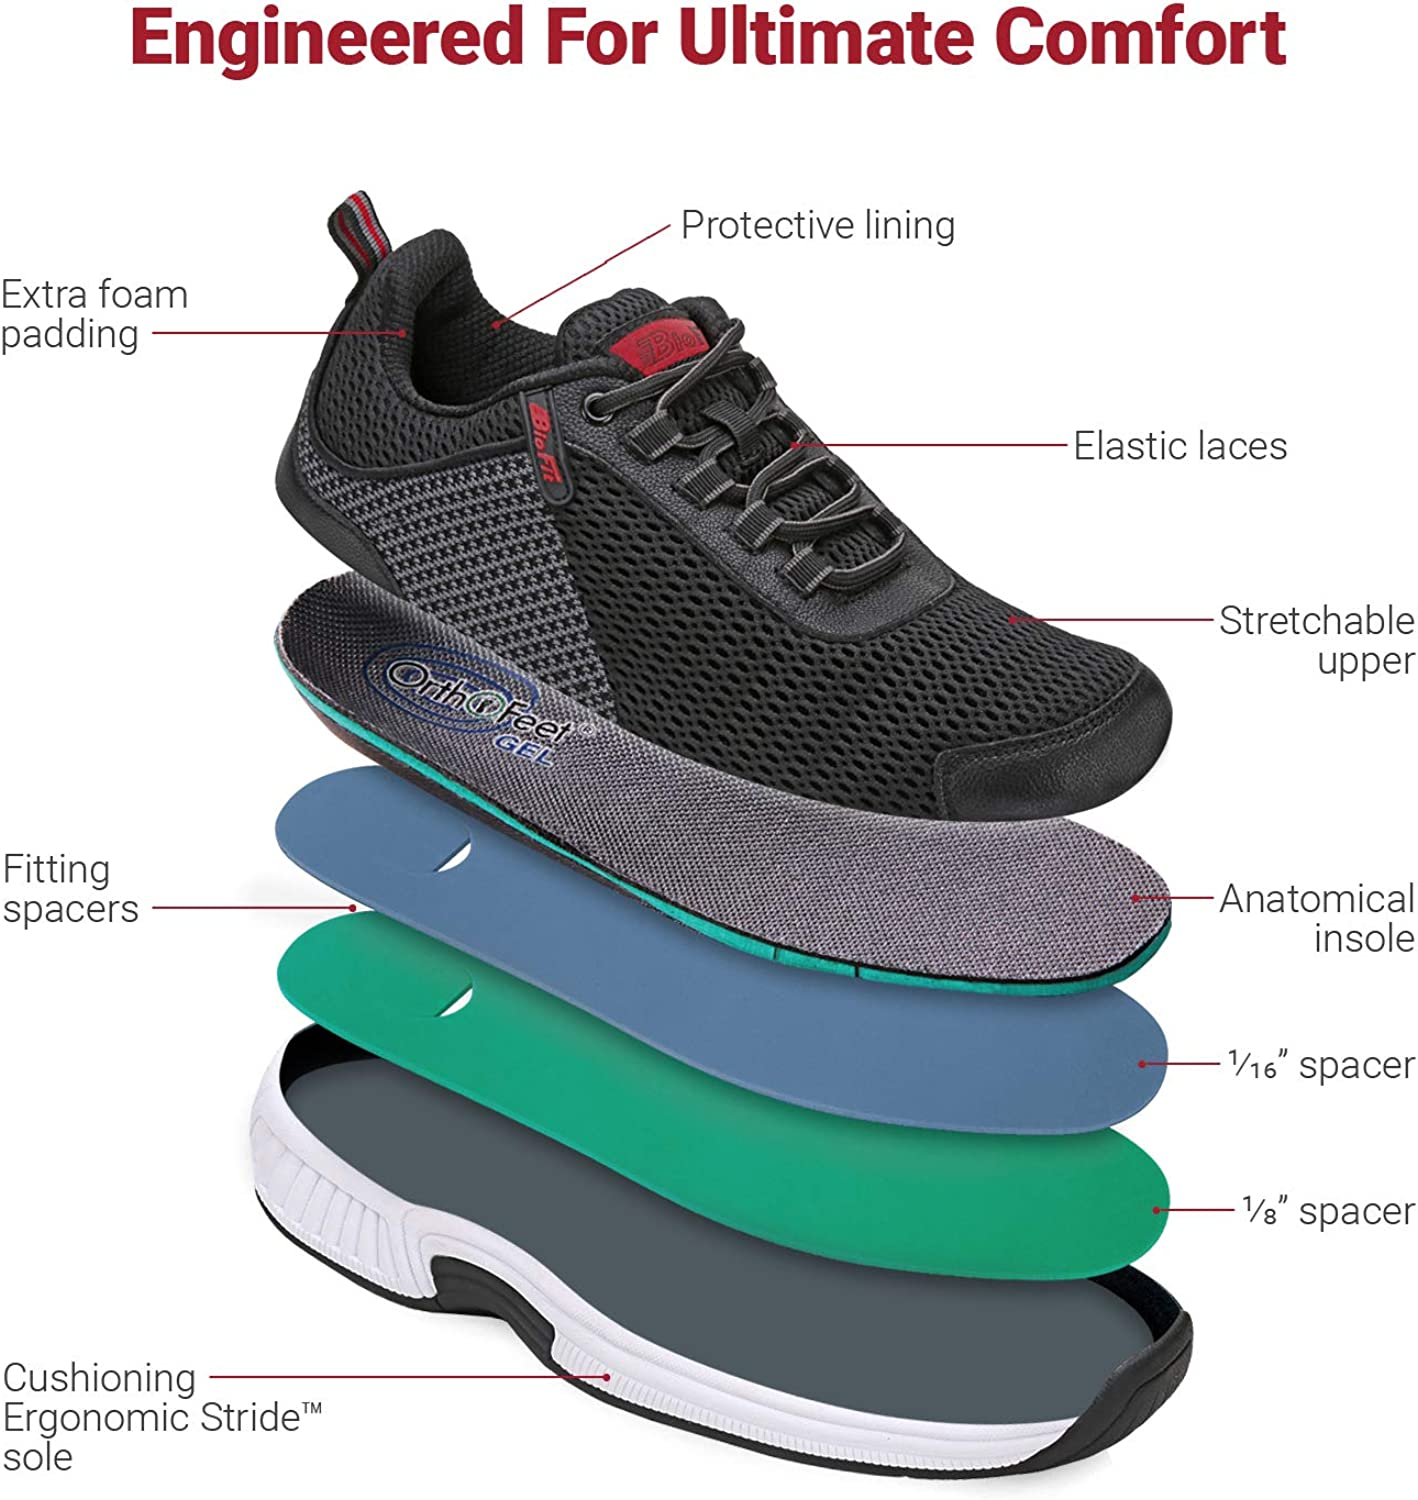 Orthofeet Proven Foot and Heel Pain Relief. Extended Widths. Best Orthopedic, Plantar Fasciitis, Diabetic Men's Walking Shoes, Tacoma